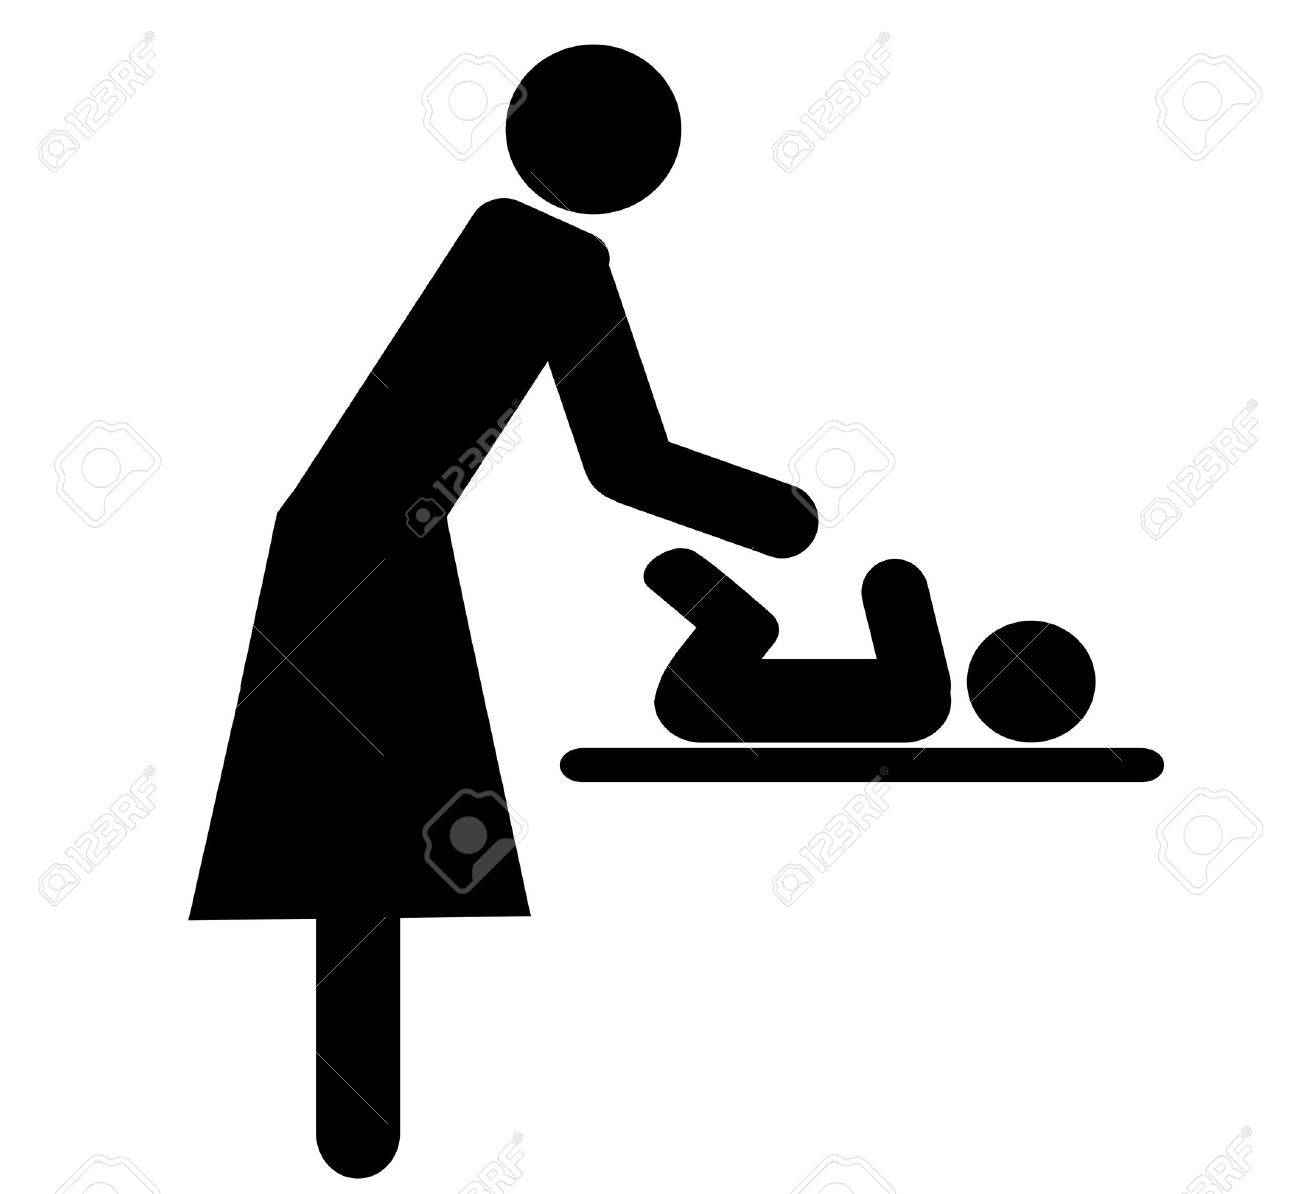 Symbol for women changing babies diapers stock photo picture and symbol for women changing babies diapers stock photo 15807305 biocorpaavc Gallery